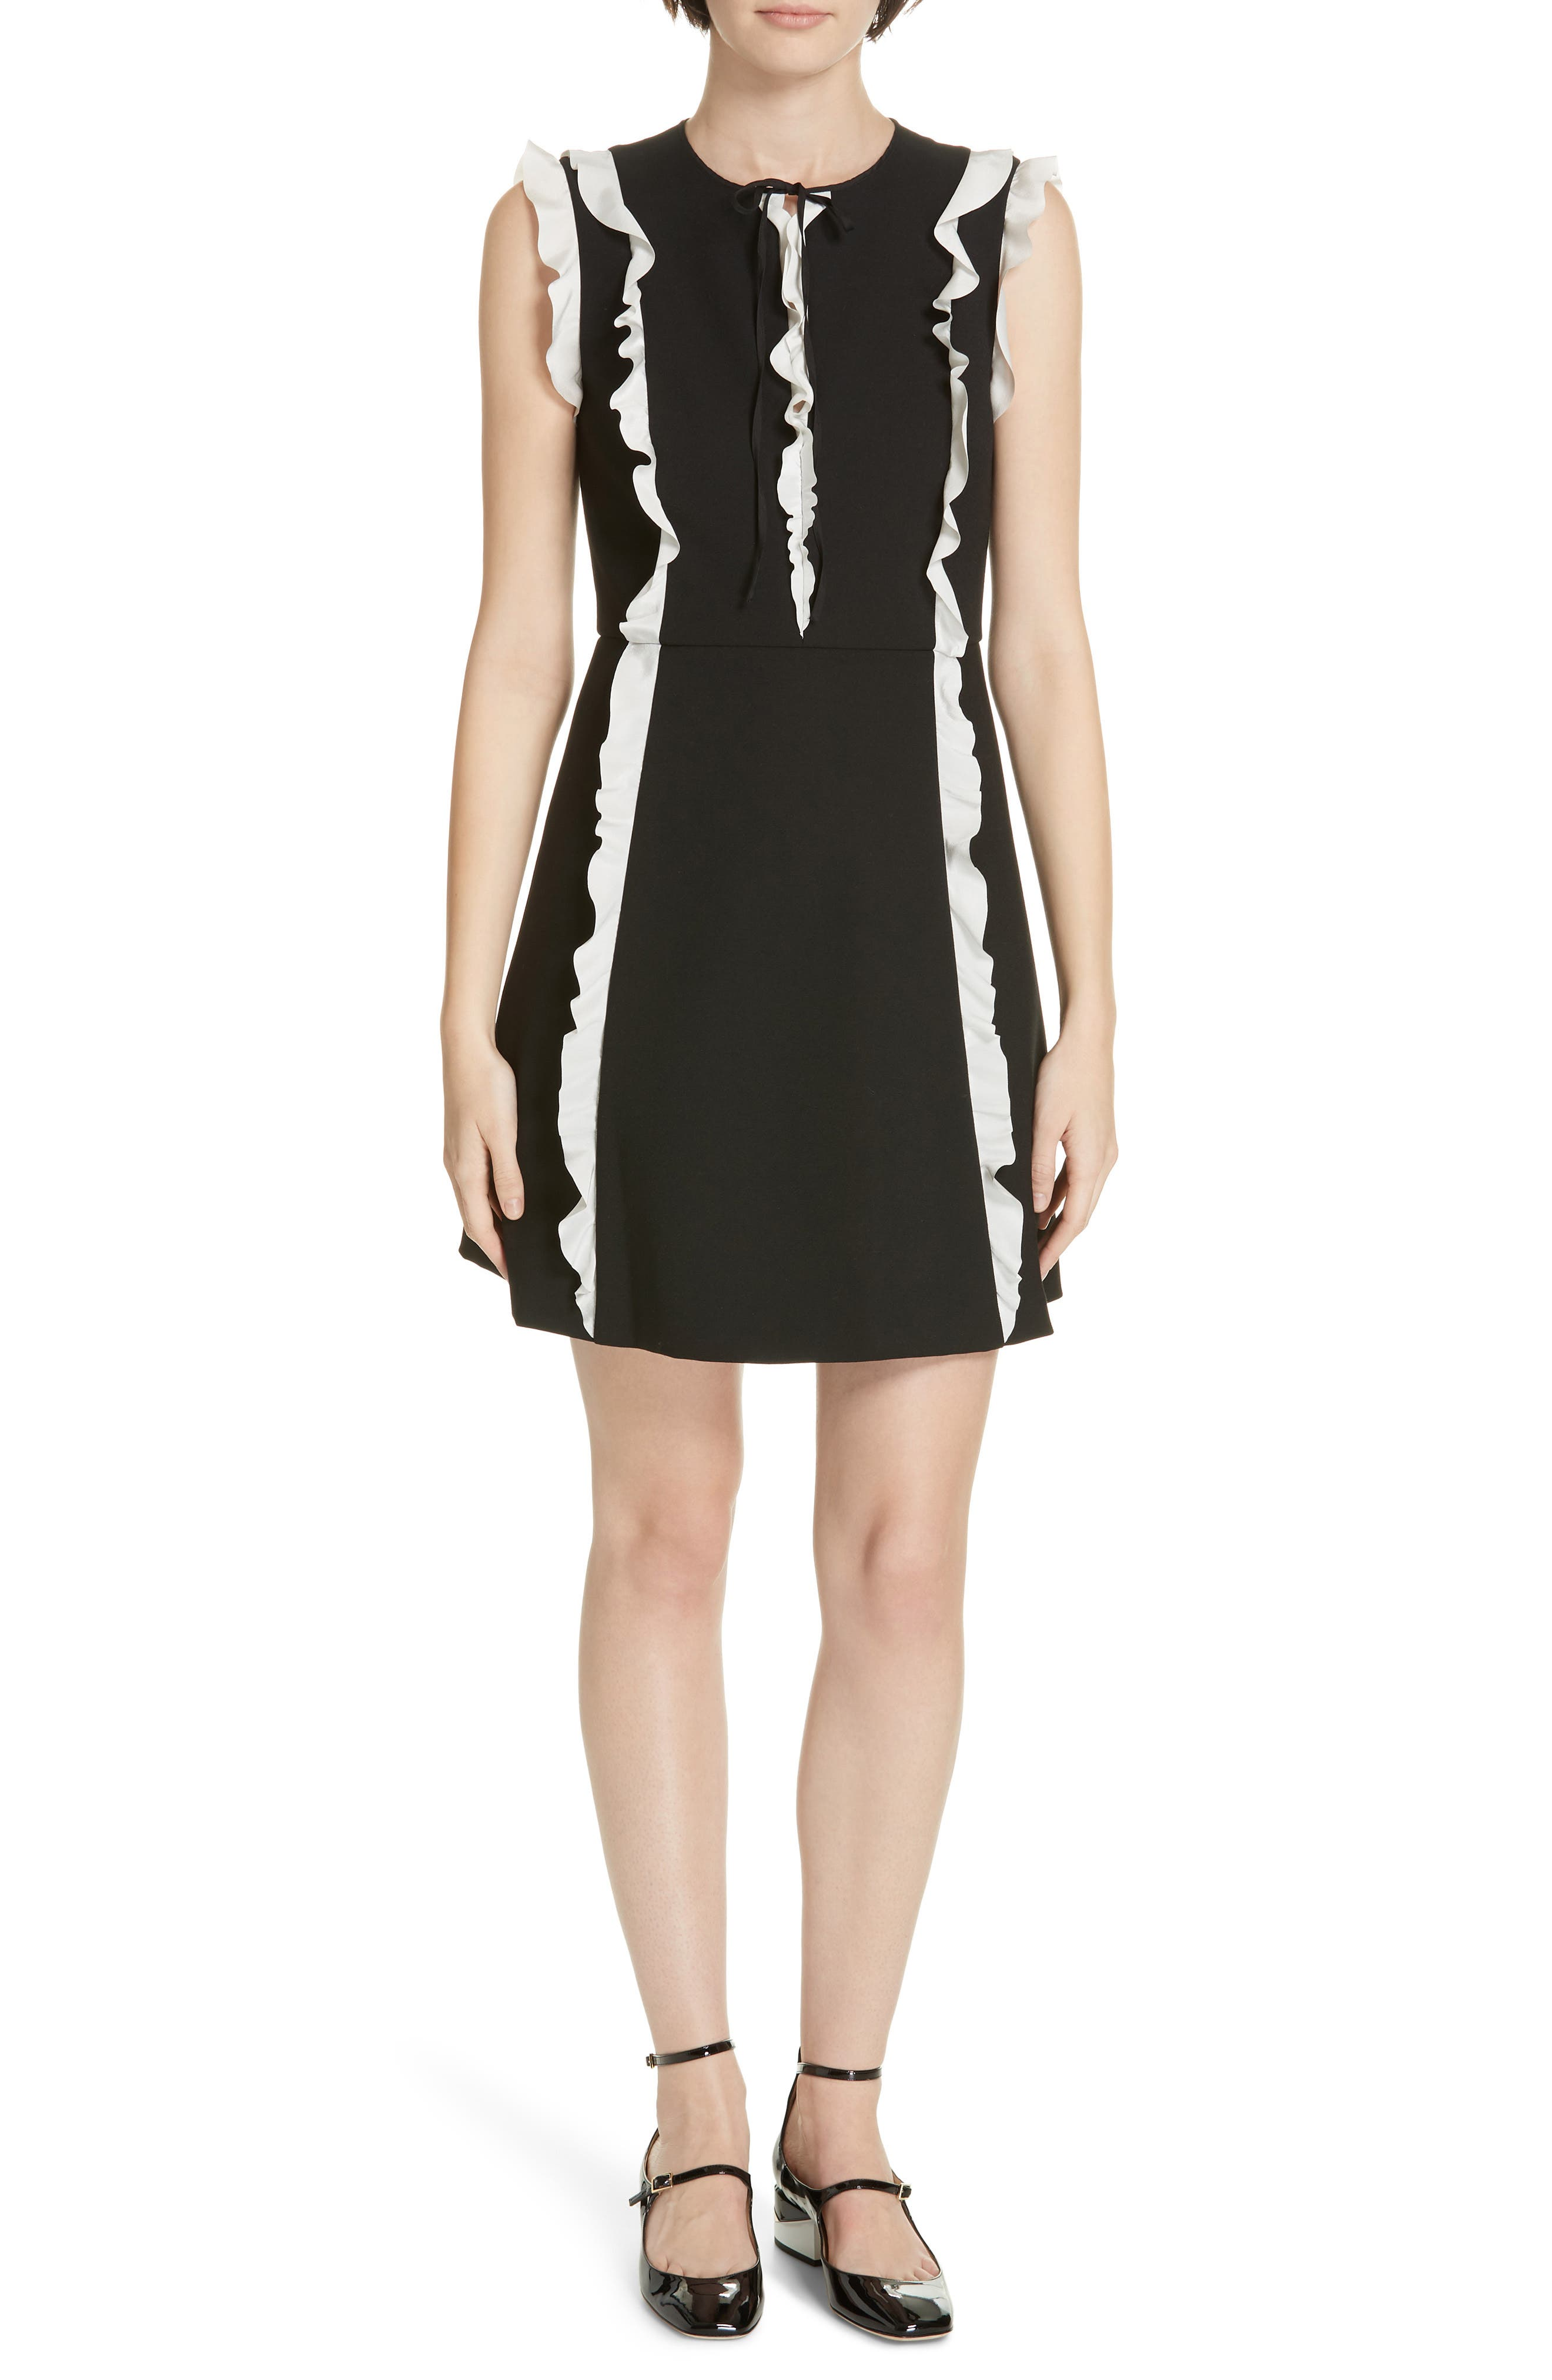 Red Valentino Contrast Ruffle A-Line Dress, 8 IT - Black